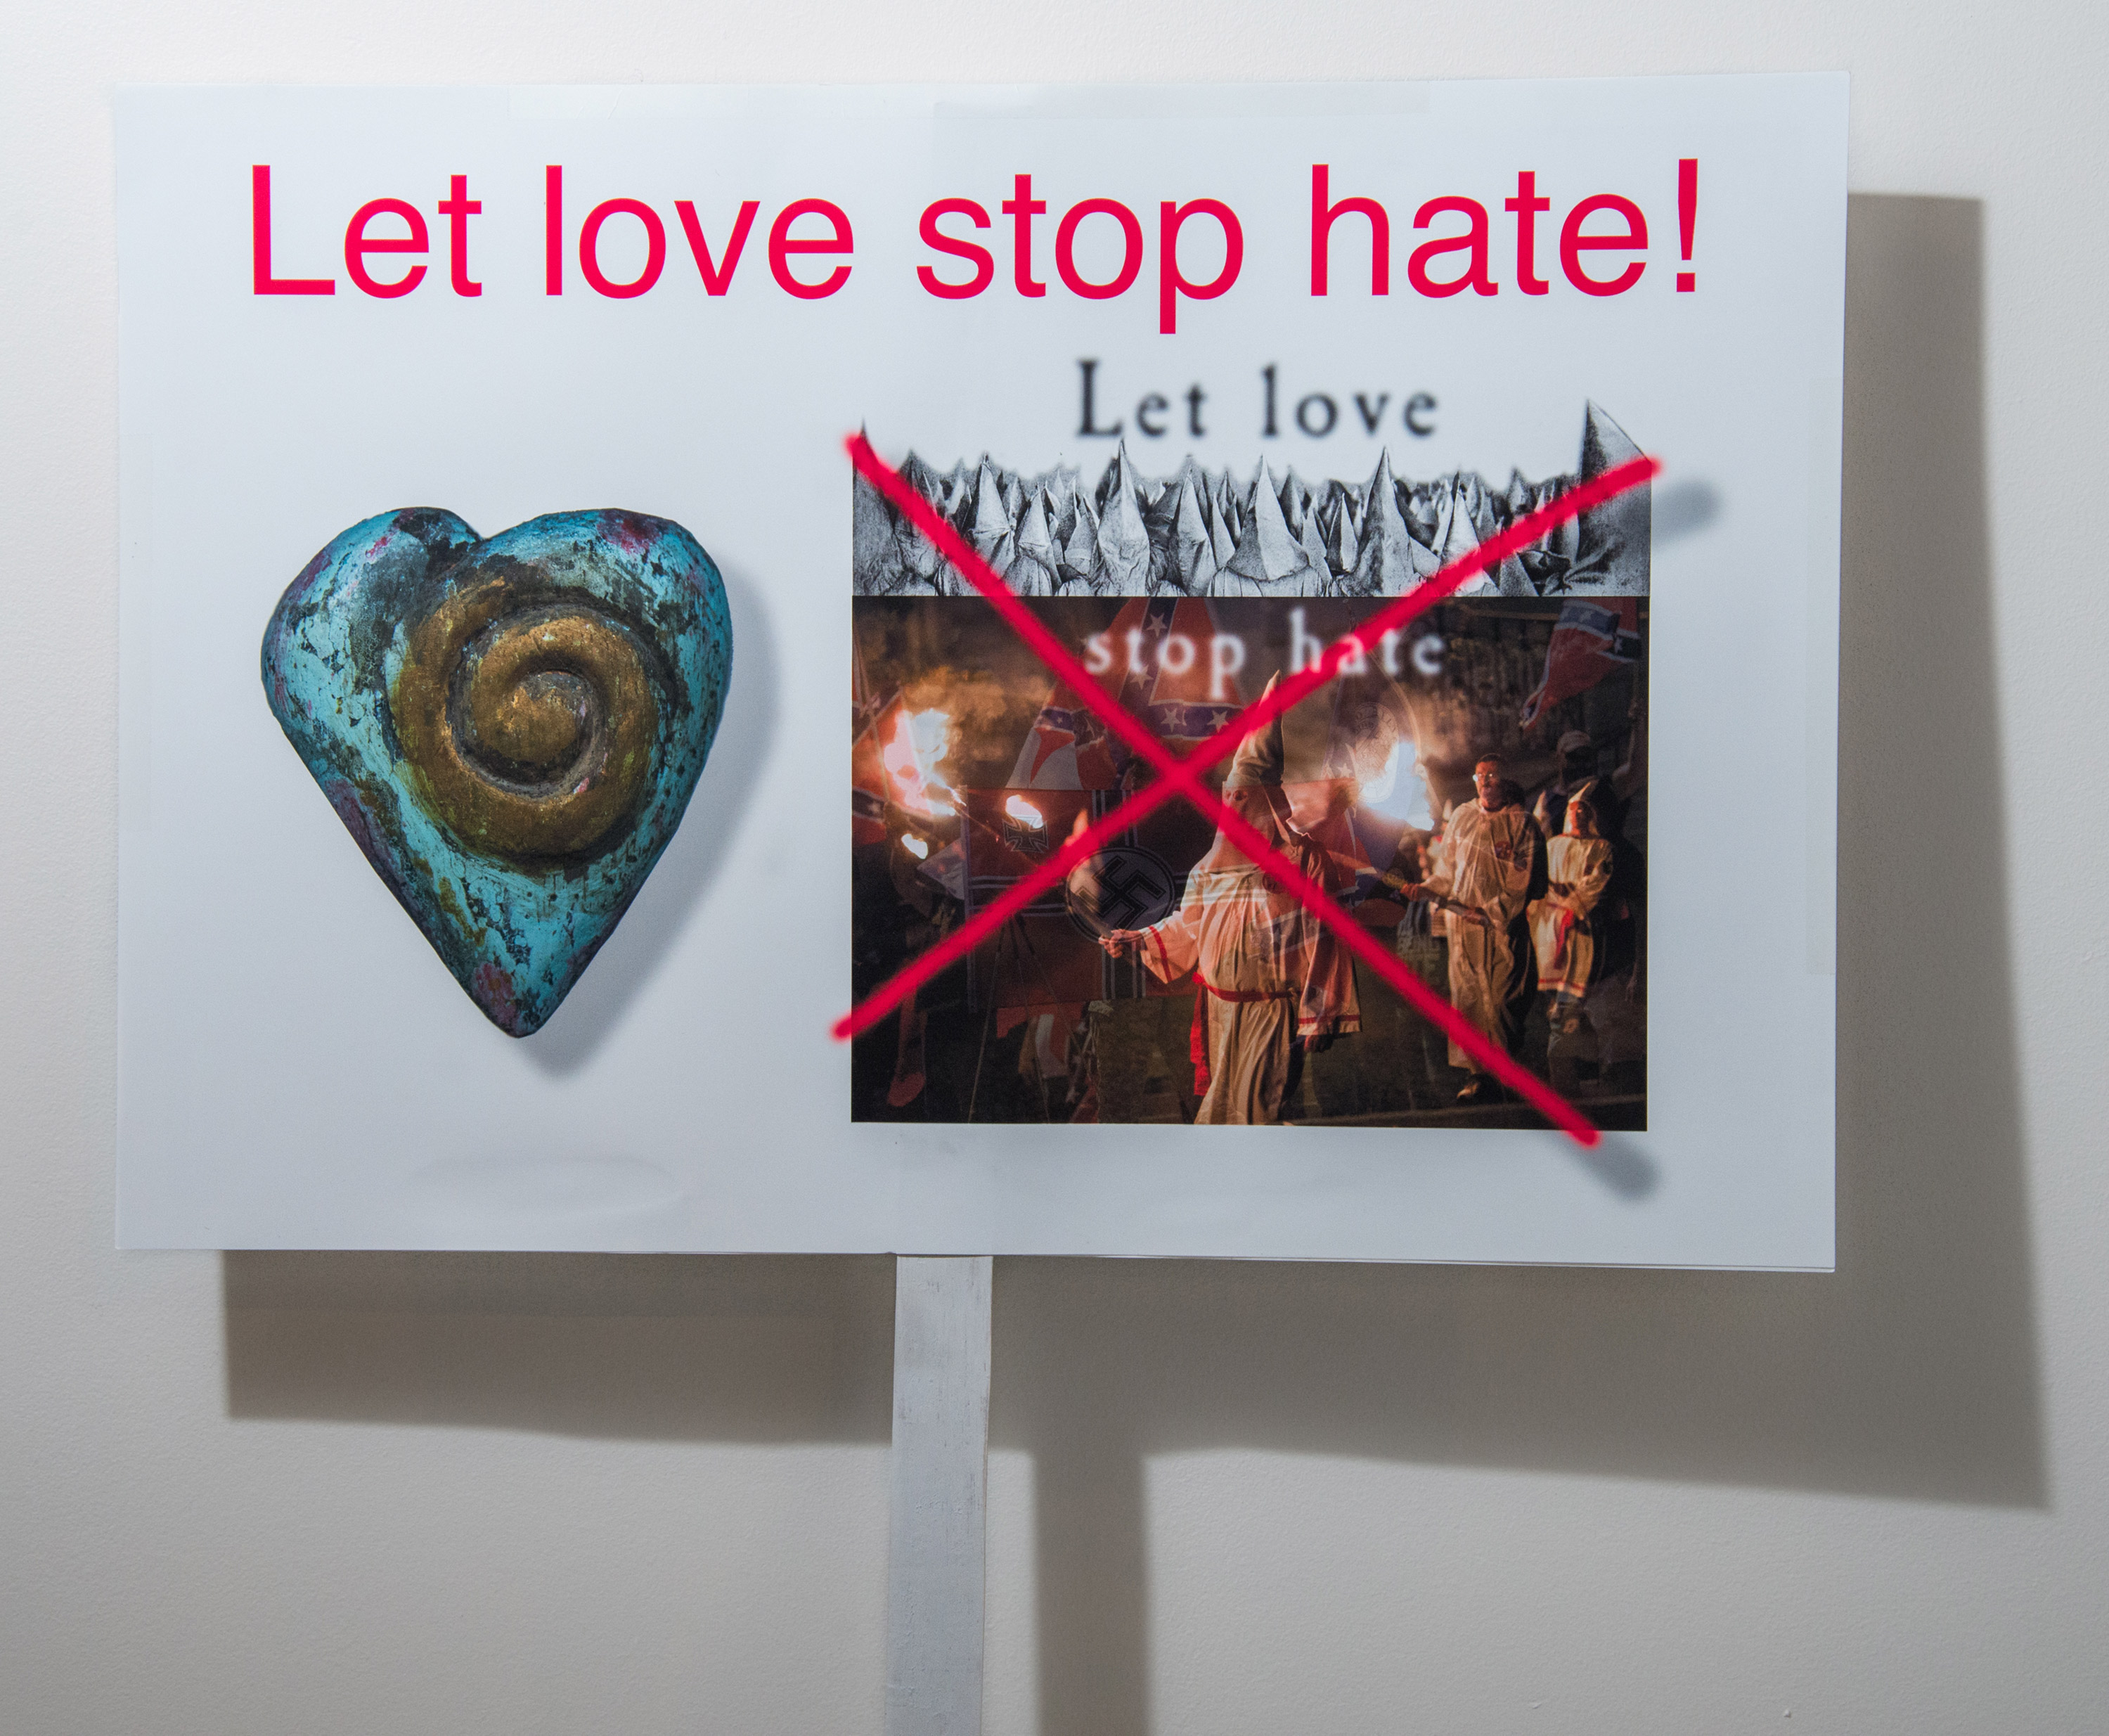 Let love stop hate! / racism is in white house, we need respect!